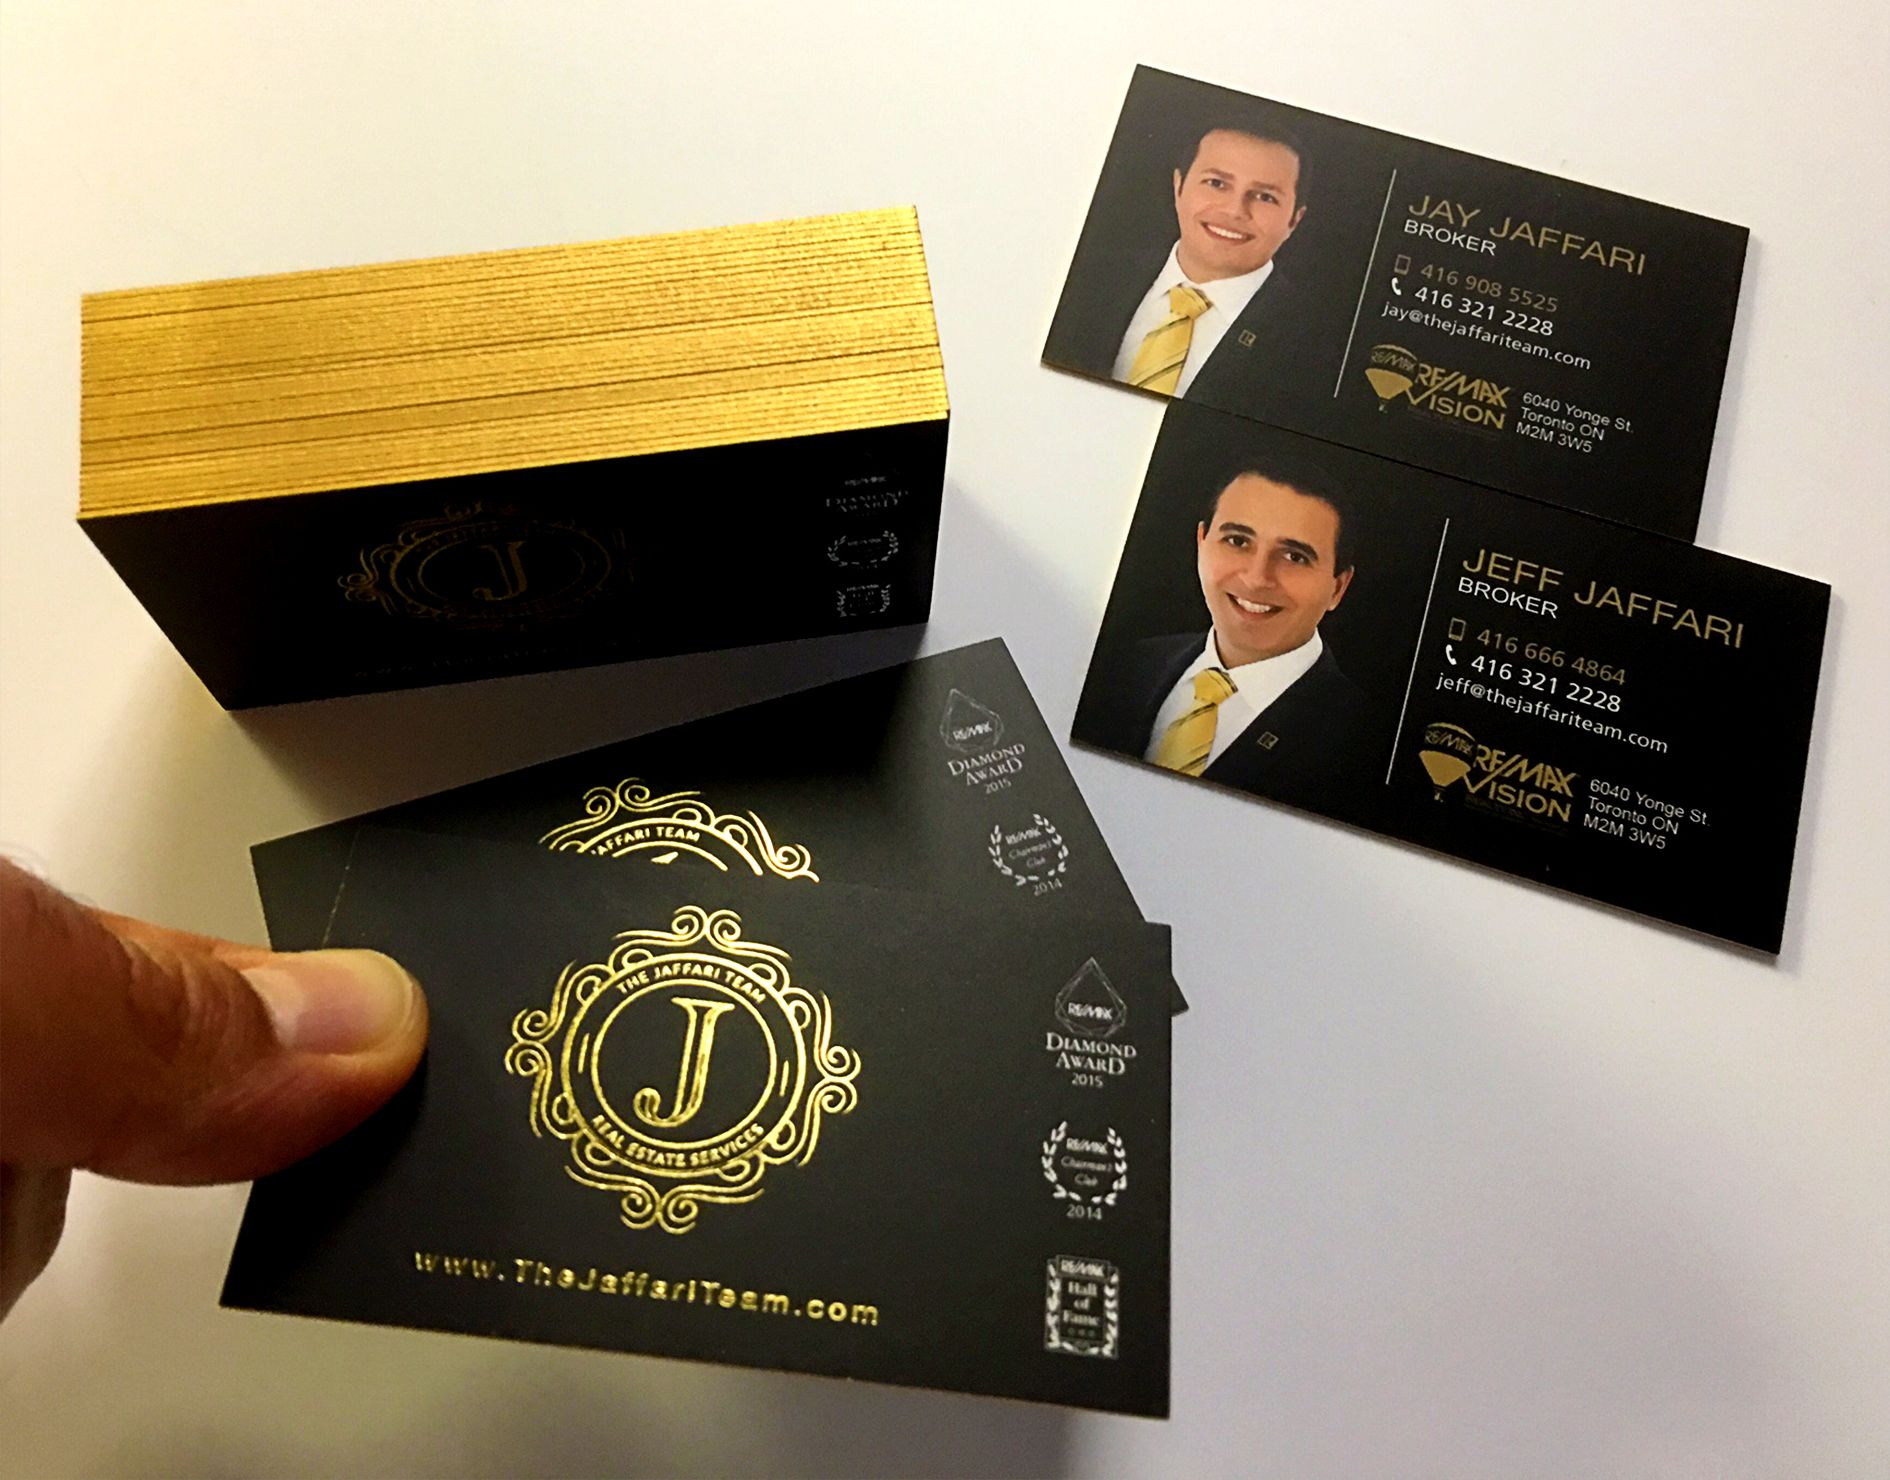 The jaffari team logo and business card design luxury gold foil the jaffari team logo and business card design luxury gold foil business cards with gold reheart Choice Image